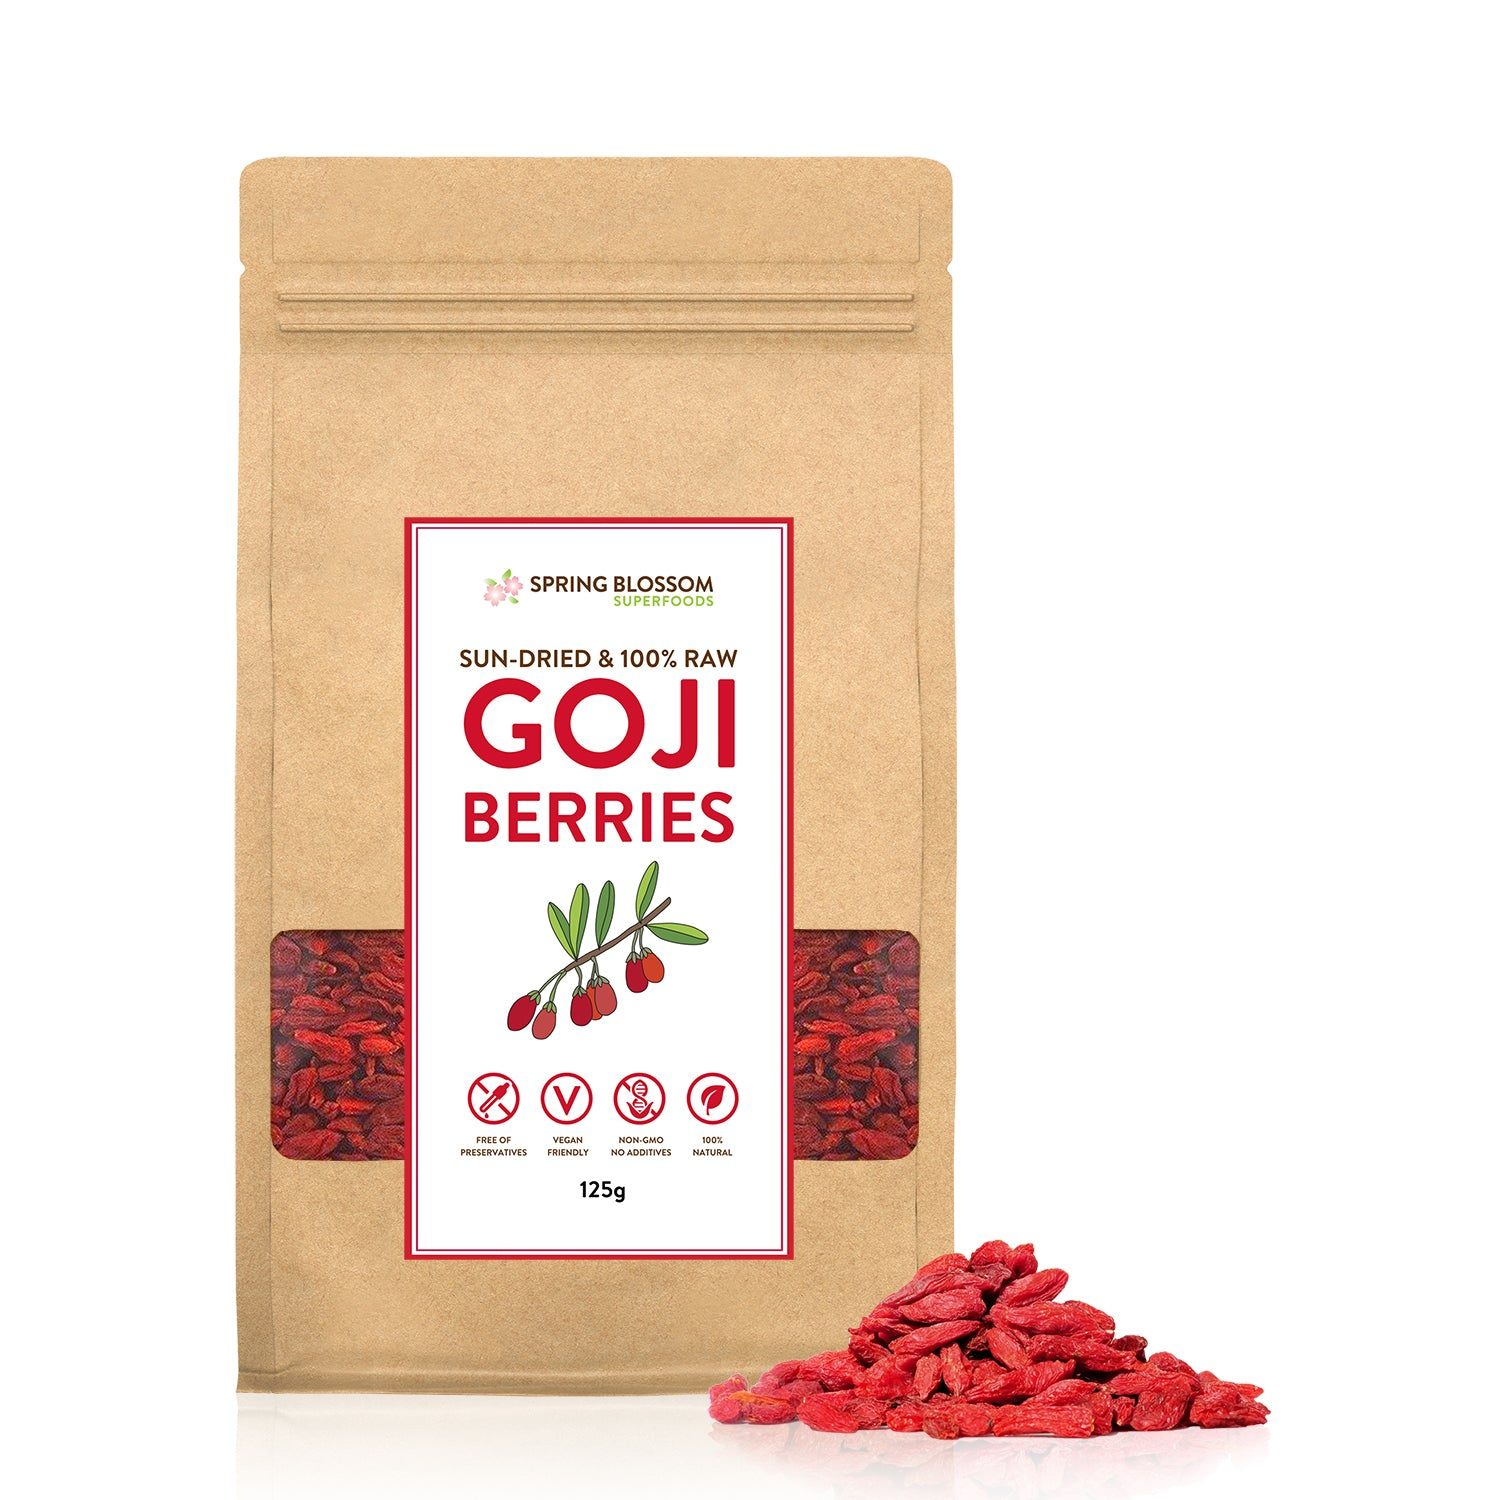 125g Natural & Raw Goji Berries - Tibetan Plateau Sun-Dried - Spring Blossom Superfoods